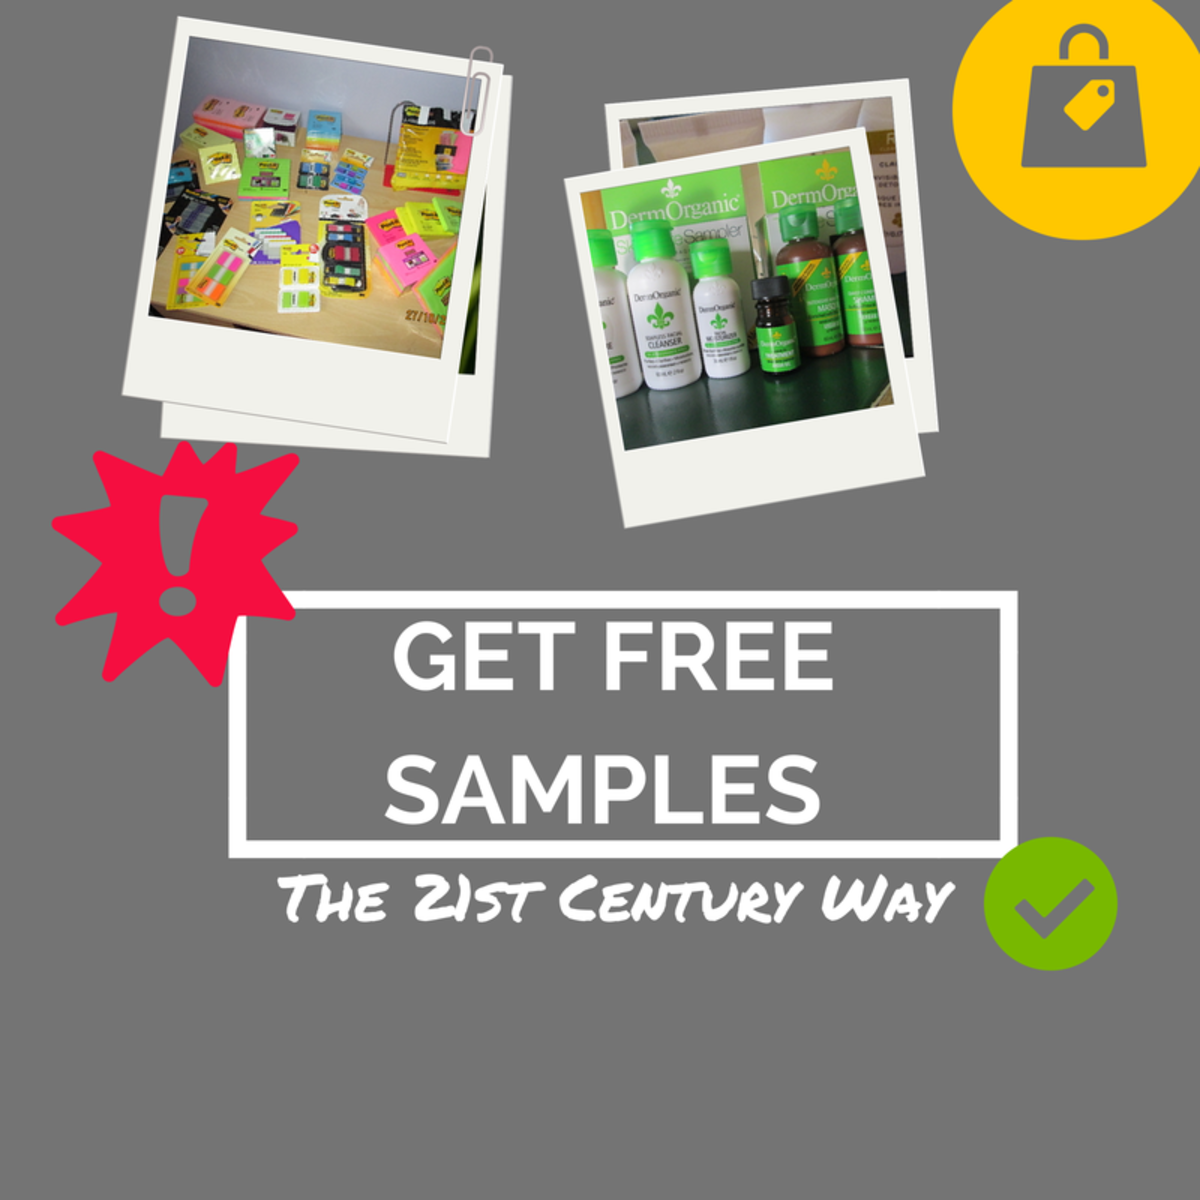 Get some tips for finding free samples and avoiding scams.